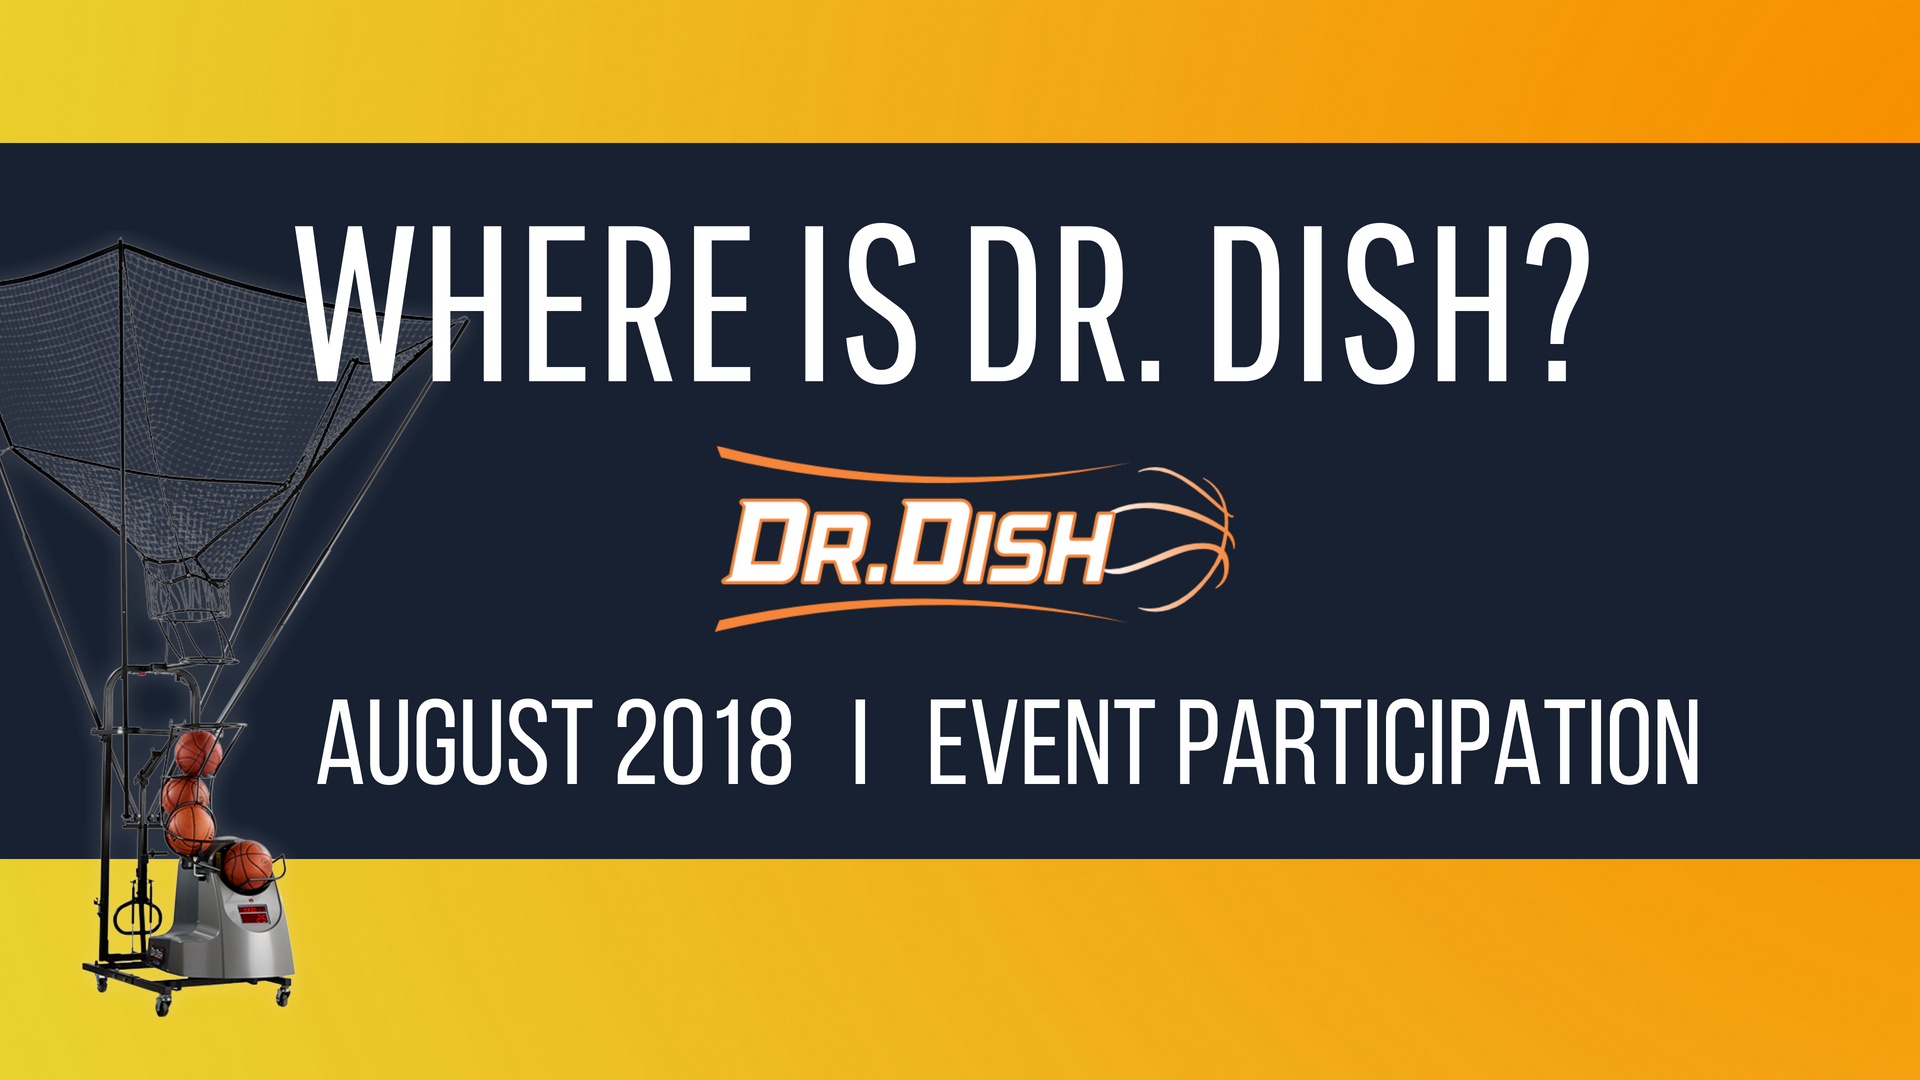 Where is Dr. dish_September 2018event participation